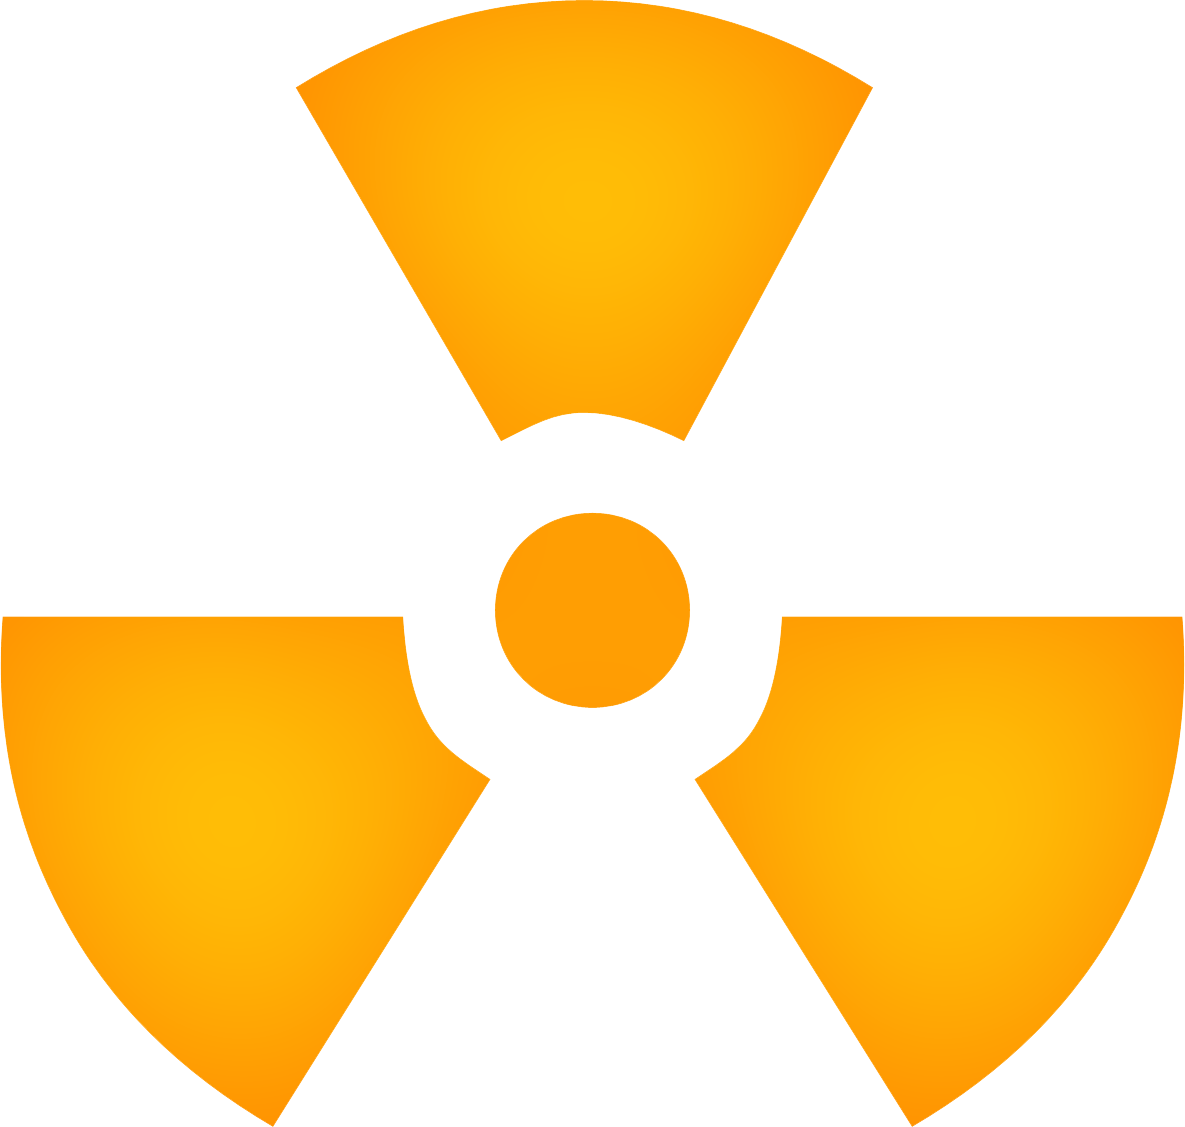 Yellow Radiation Sign PNG Image